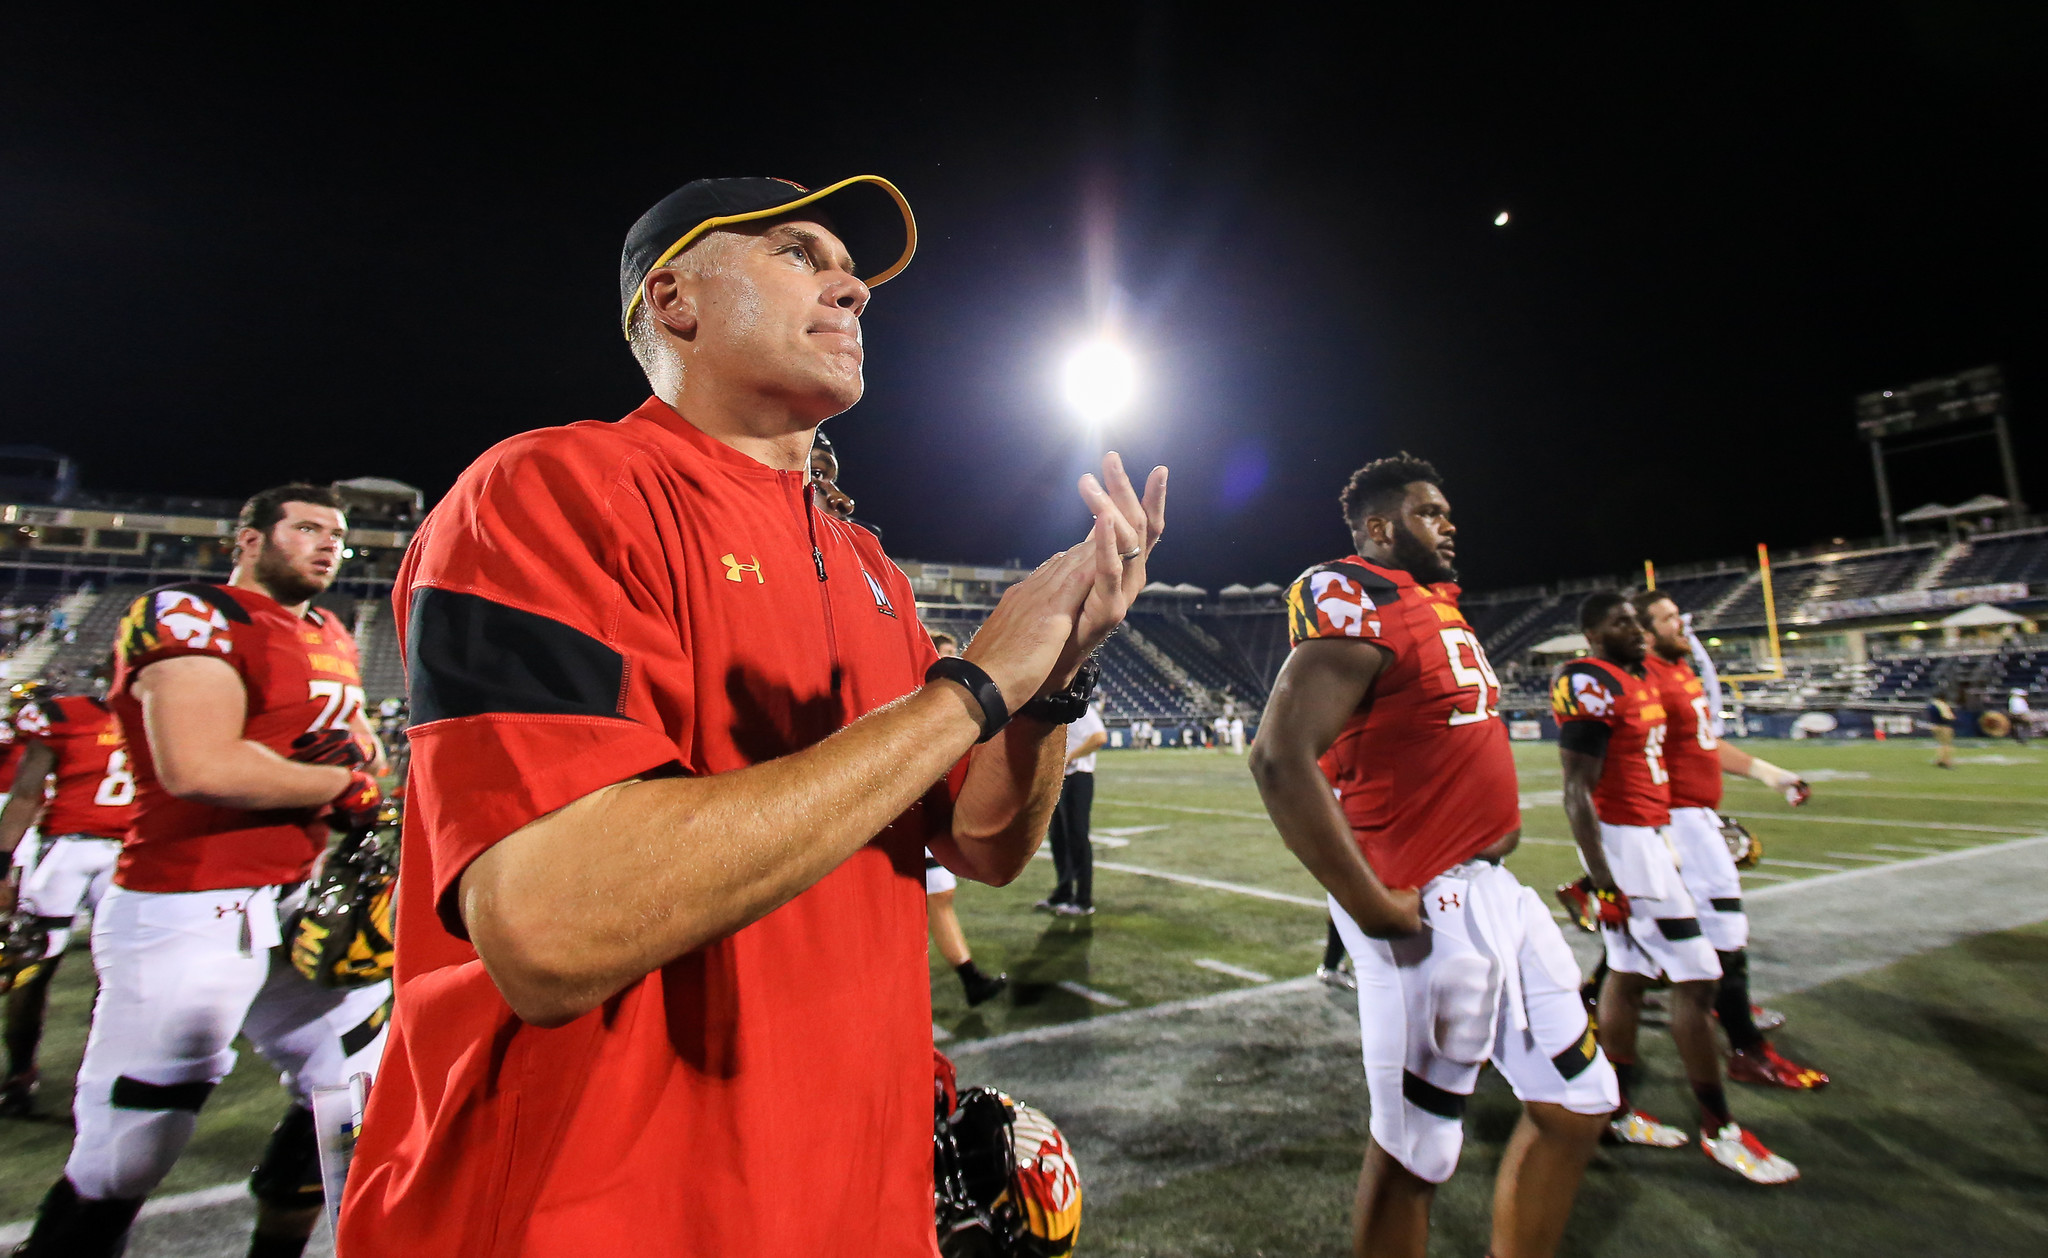 Bal-after-3-0-start-maryland-football-receives-votes-in-top-25-polls-20160918